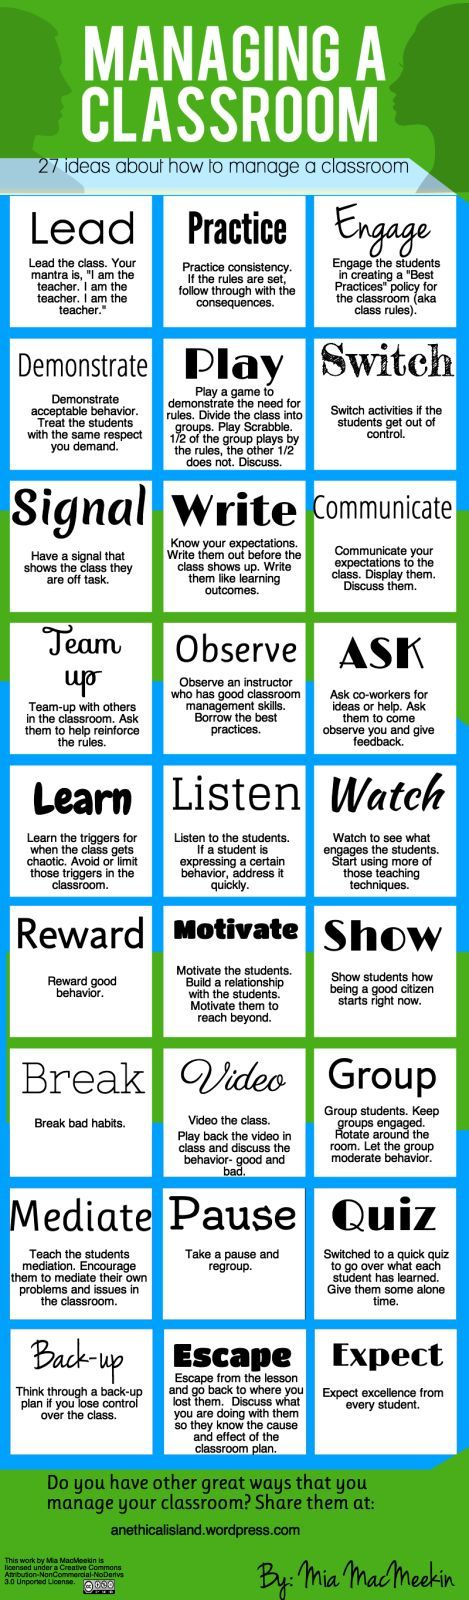 Classroom Discipline Ideas ~ Best images about classroom discipline tips on